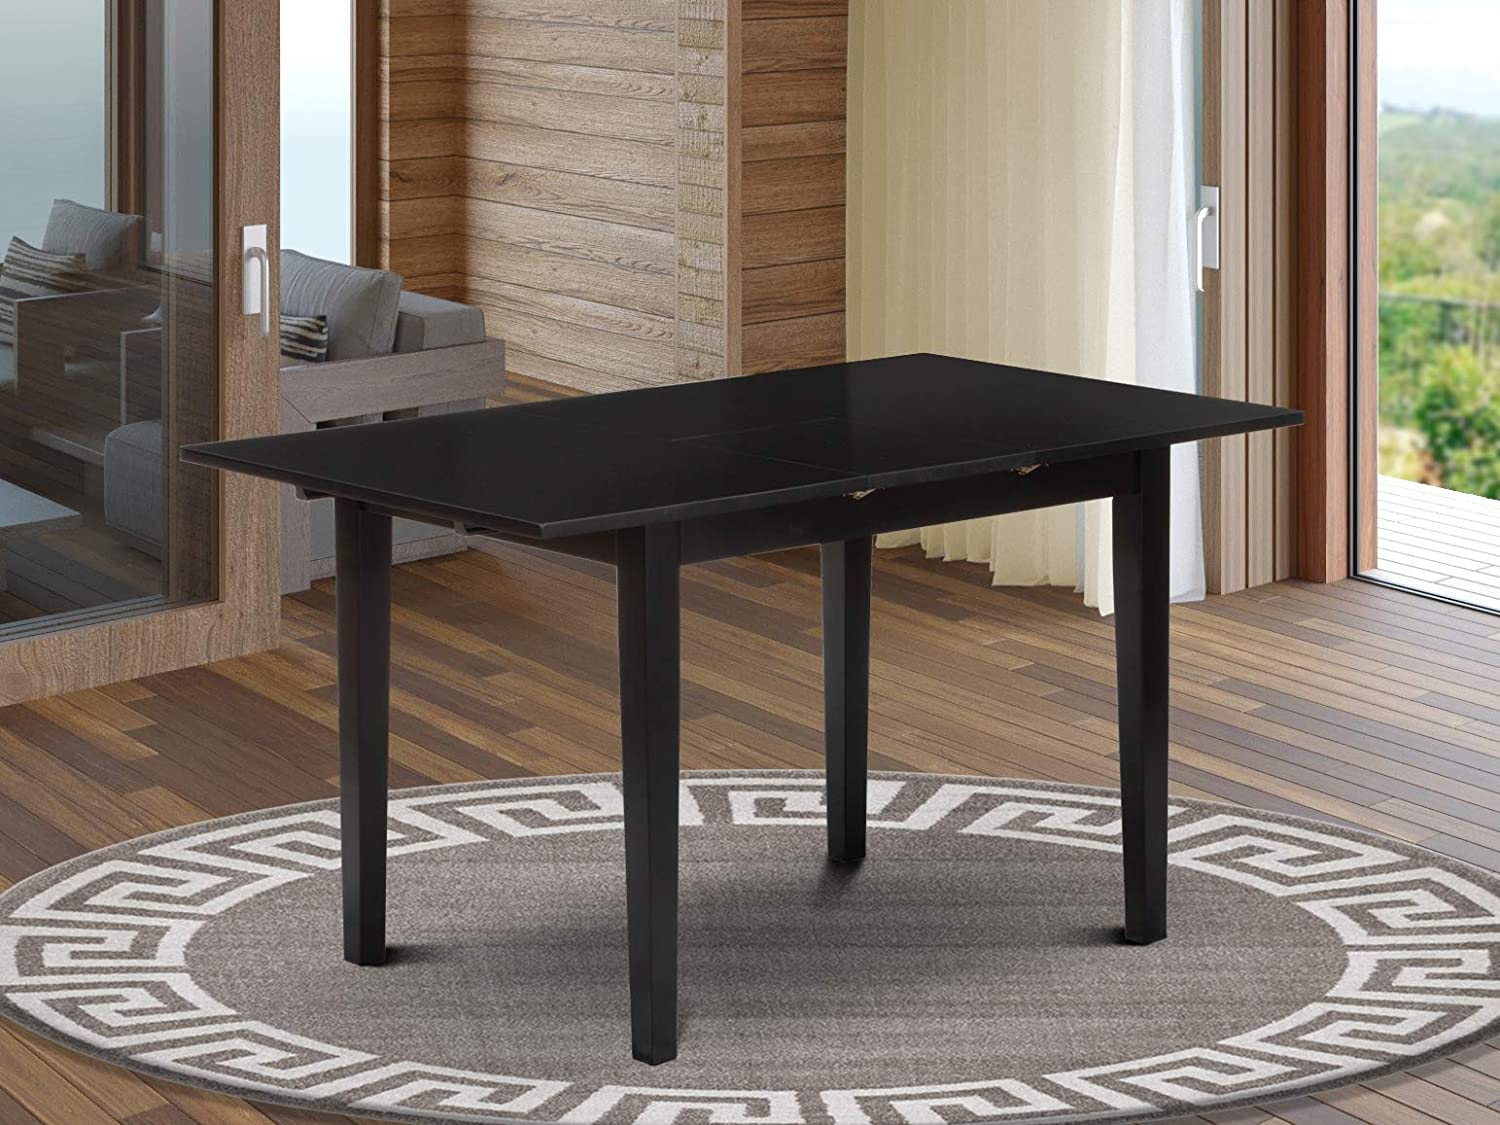 East West Furniture NFT-BLK-T Wooden Table, Standard Height